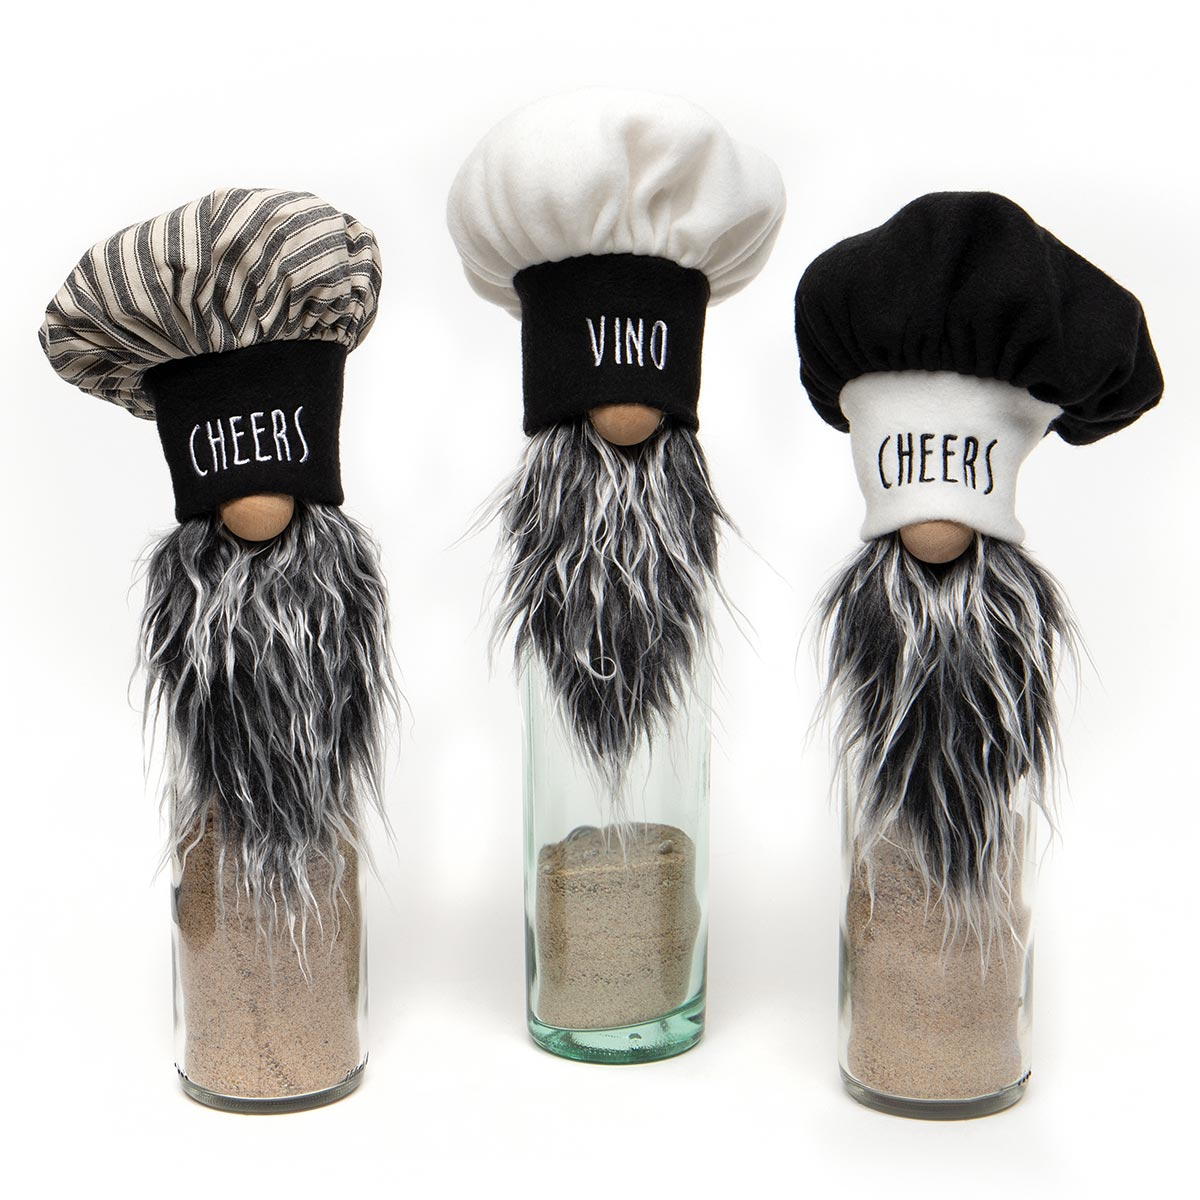 BON APPETIT TRIO GNOME BOTTLE TOPPER WITH CHEF HAT